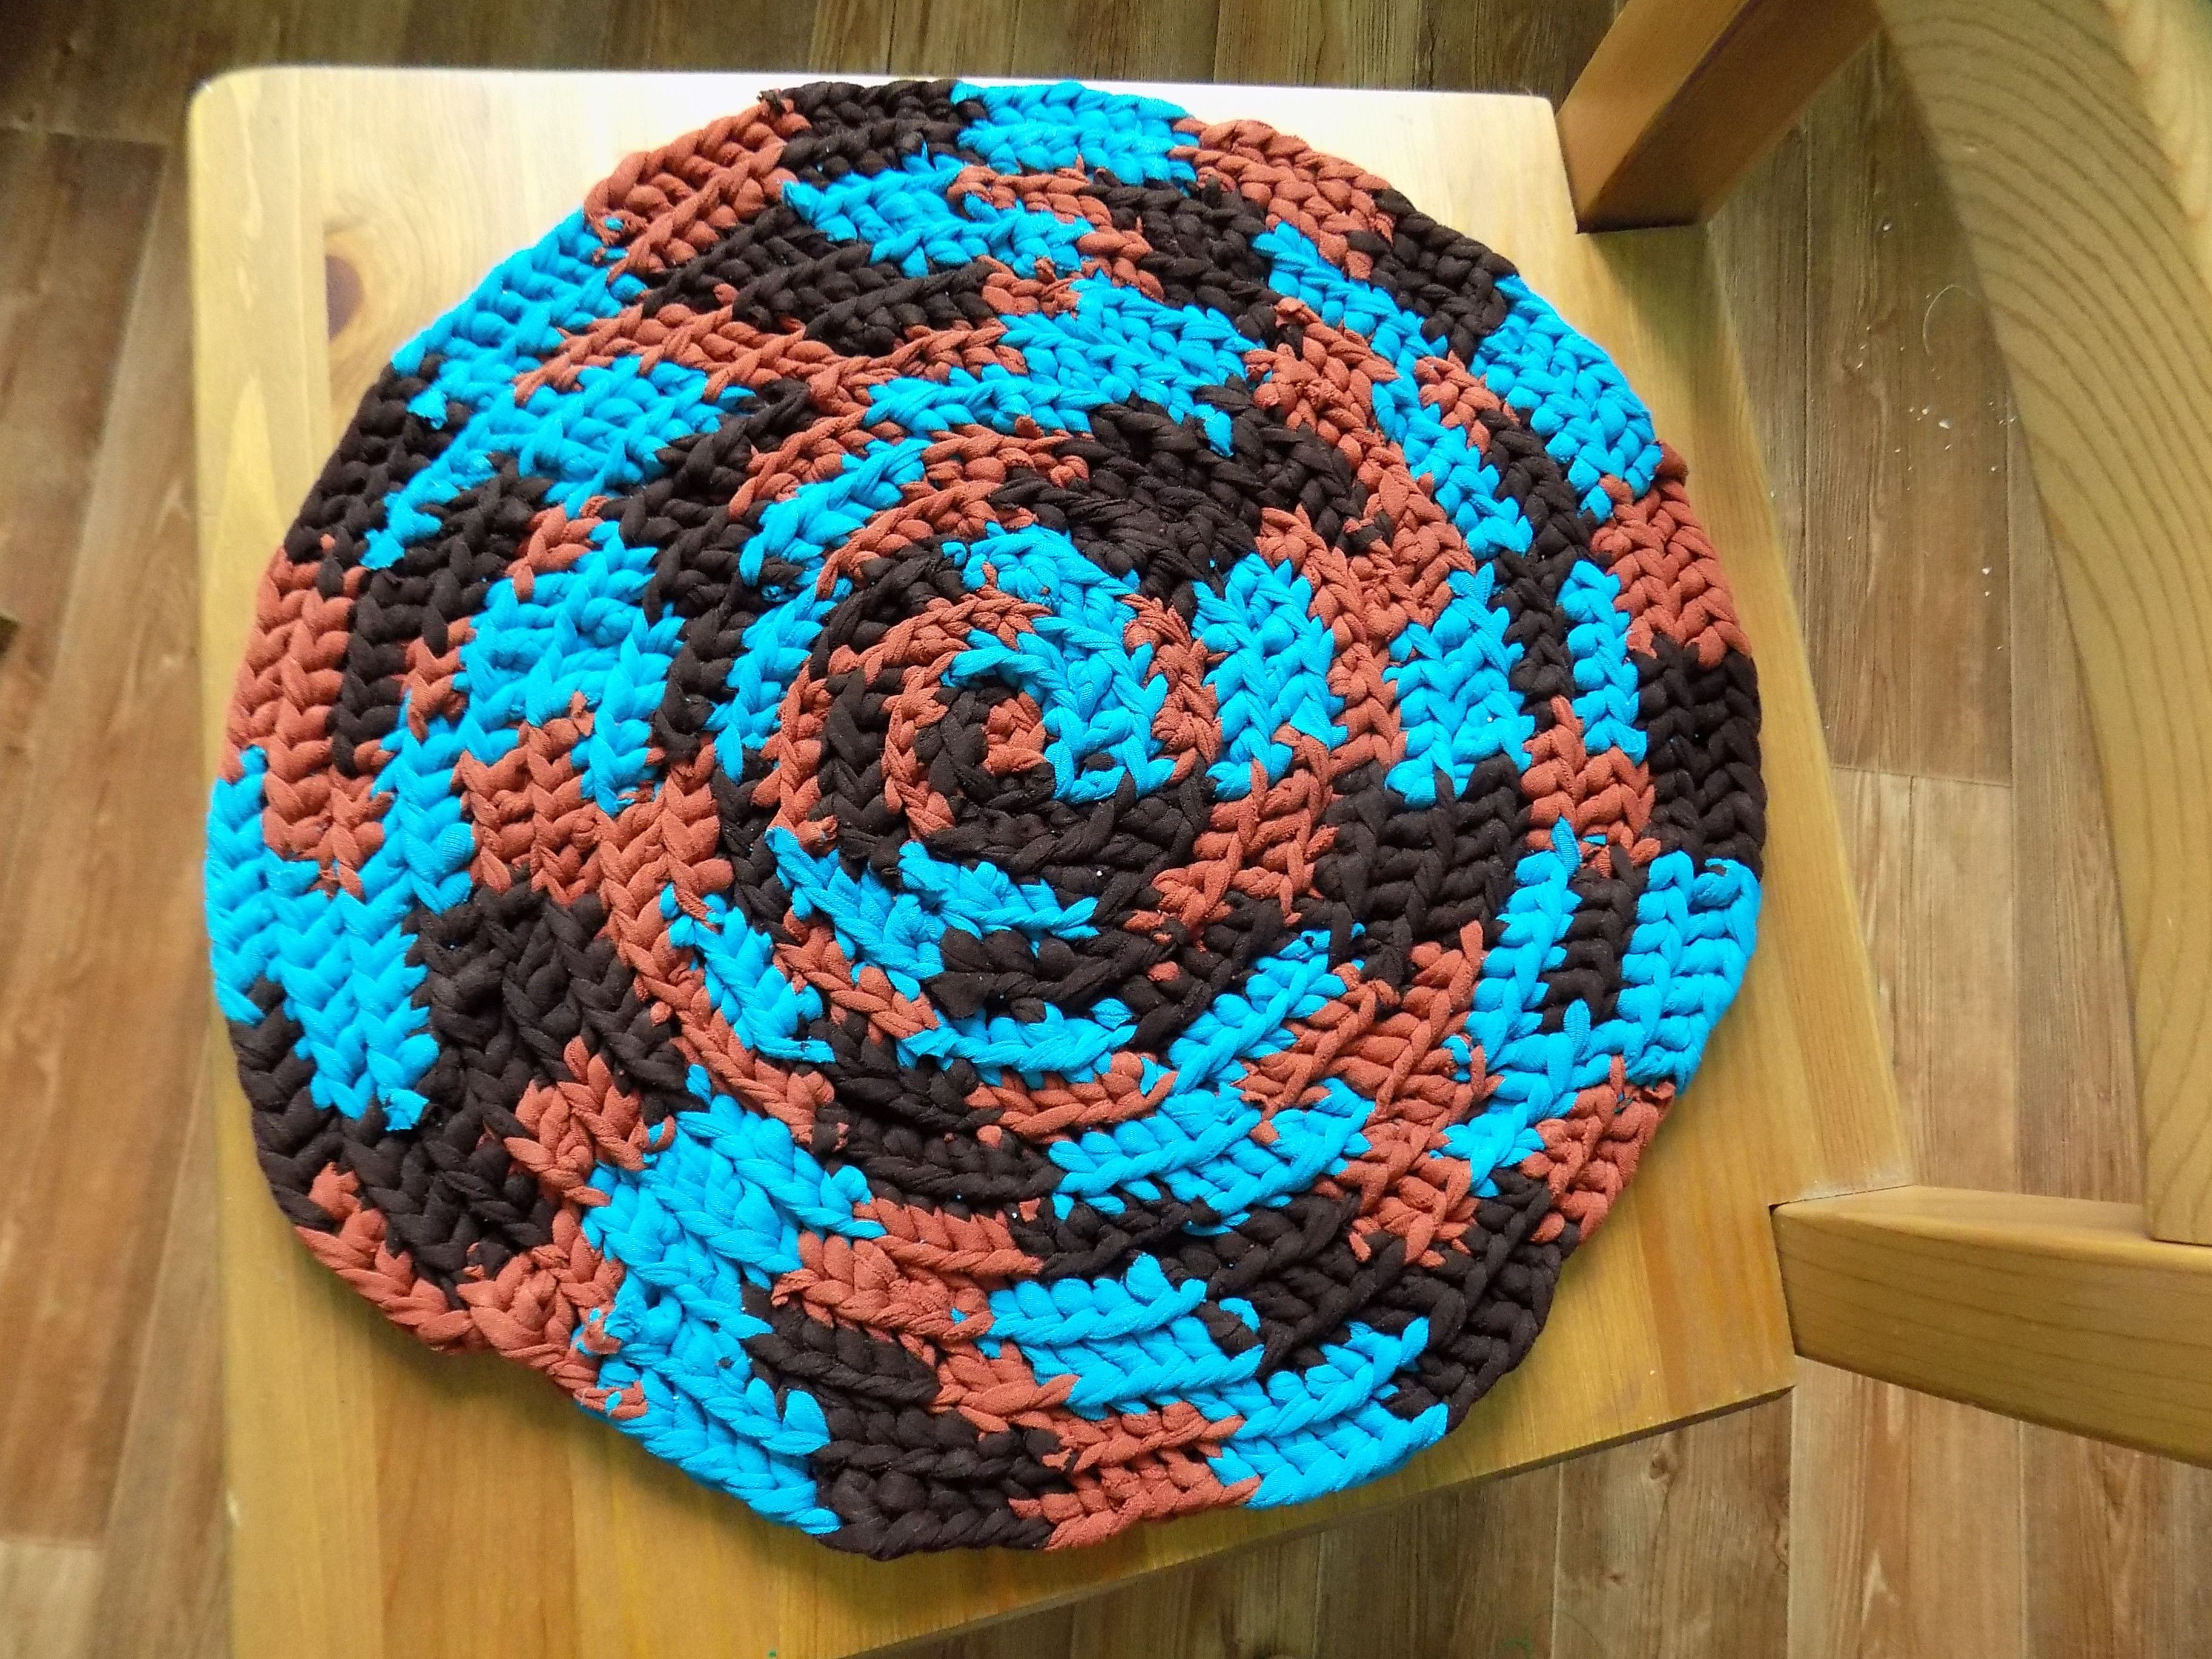 Crochet Table Piece, Blue Round Seat Chair Chair Stool Cover, Crocheted Hot  Pad, Round Placemat, Rustic Blue Table Pet Mat, Chair Cushion Pictures Gallery